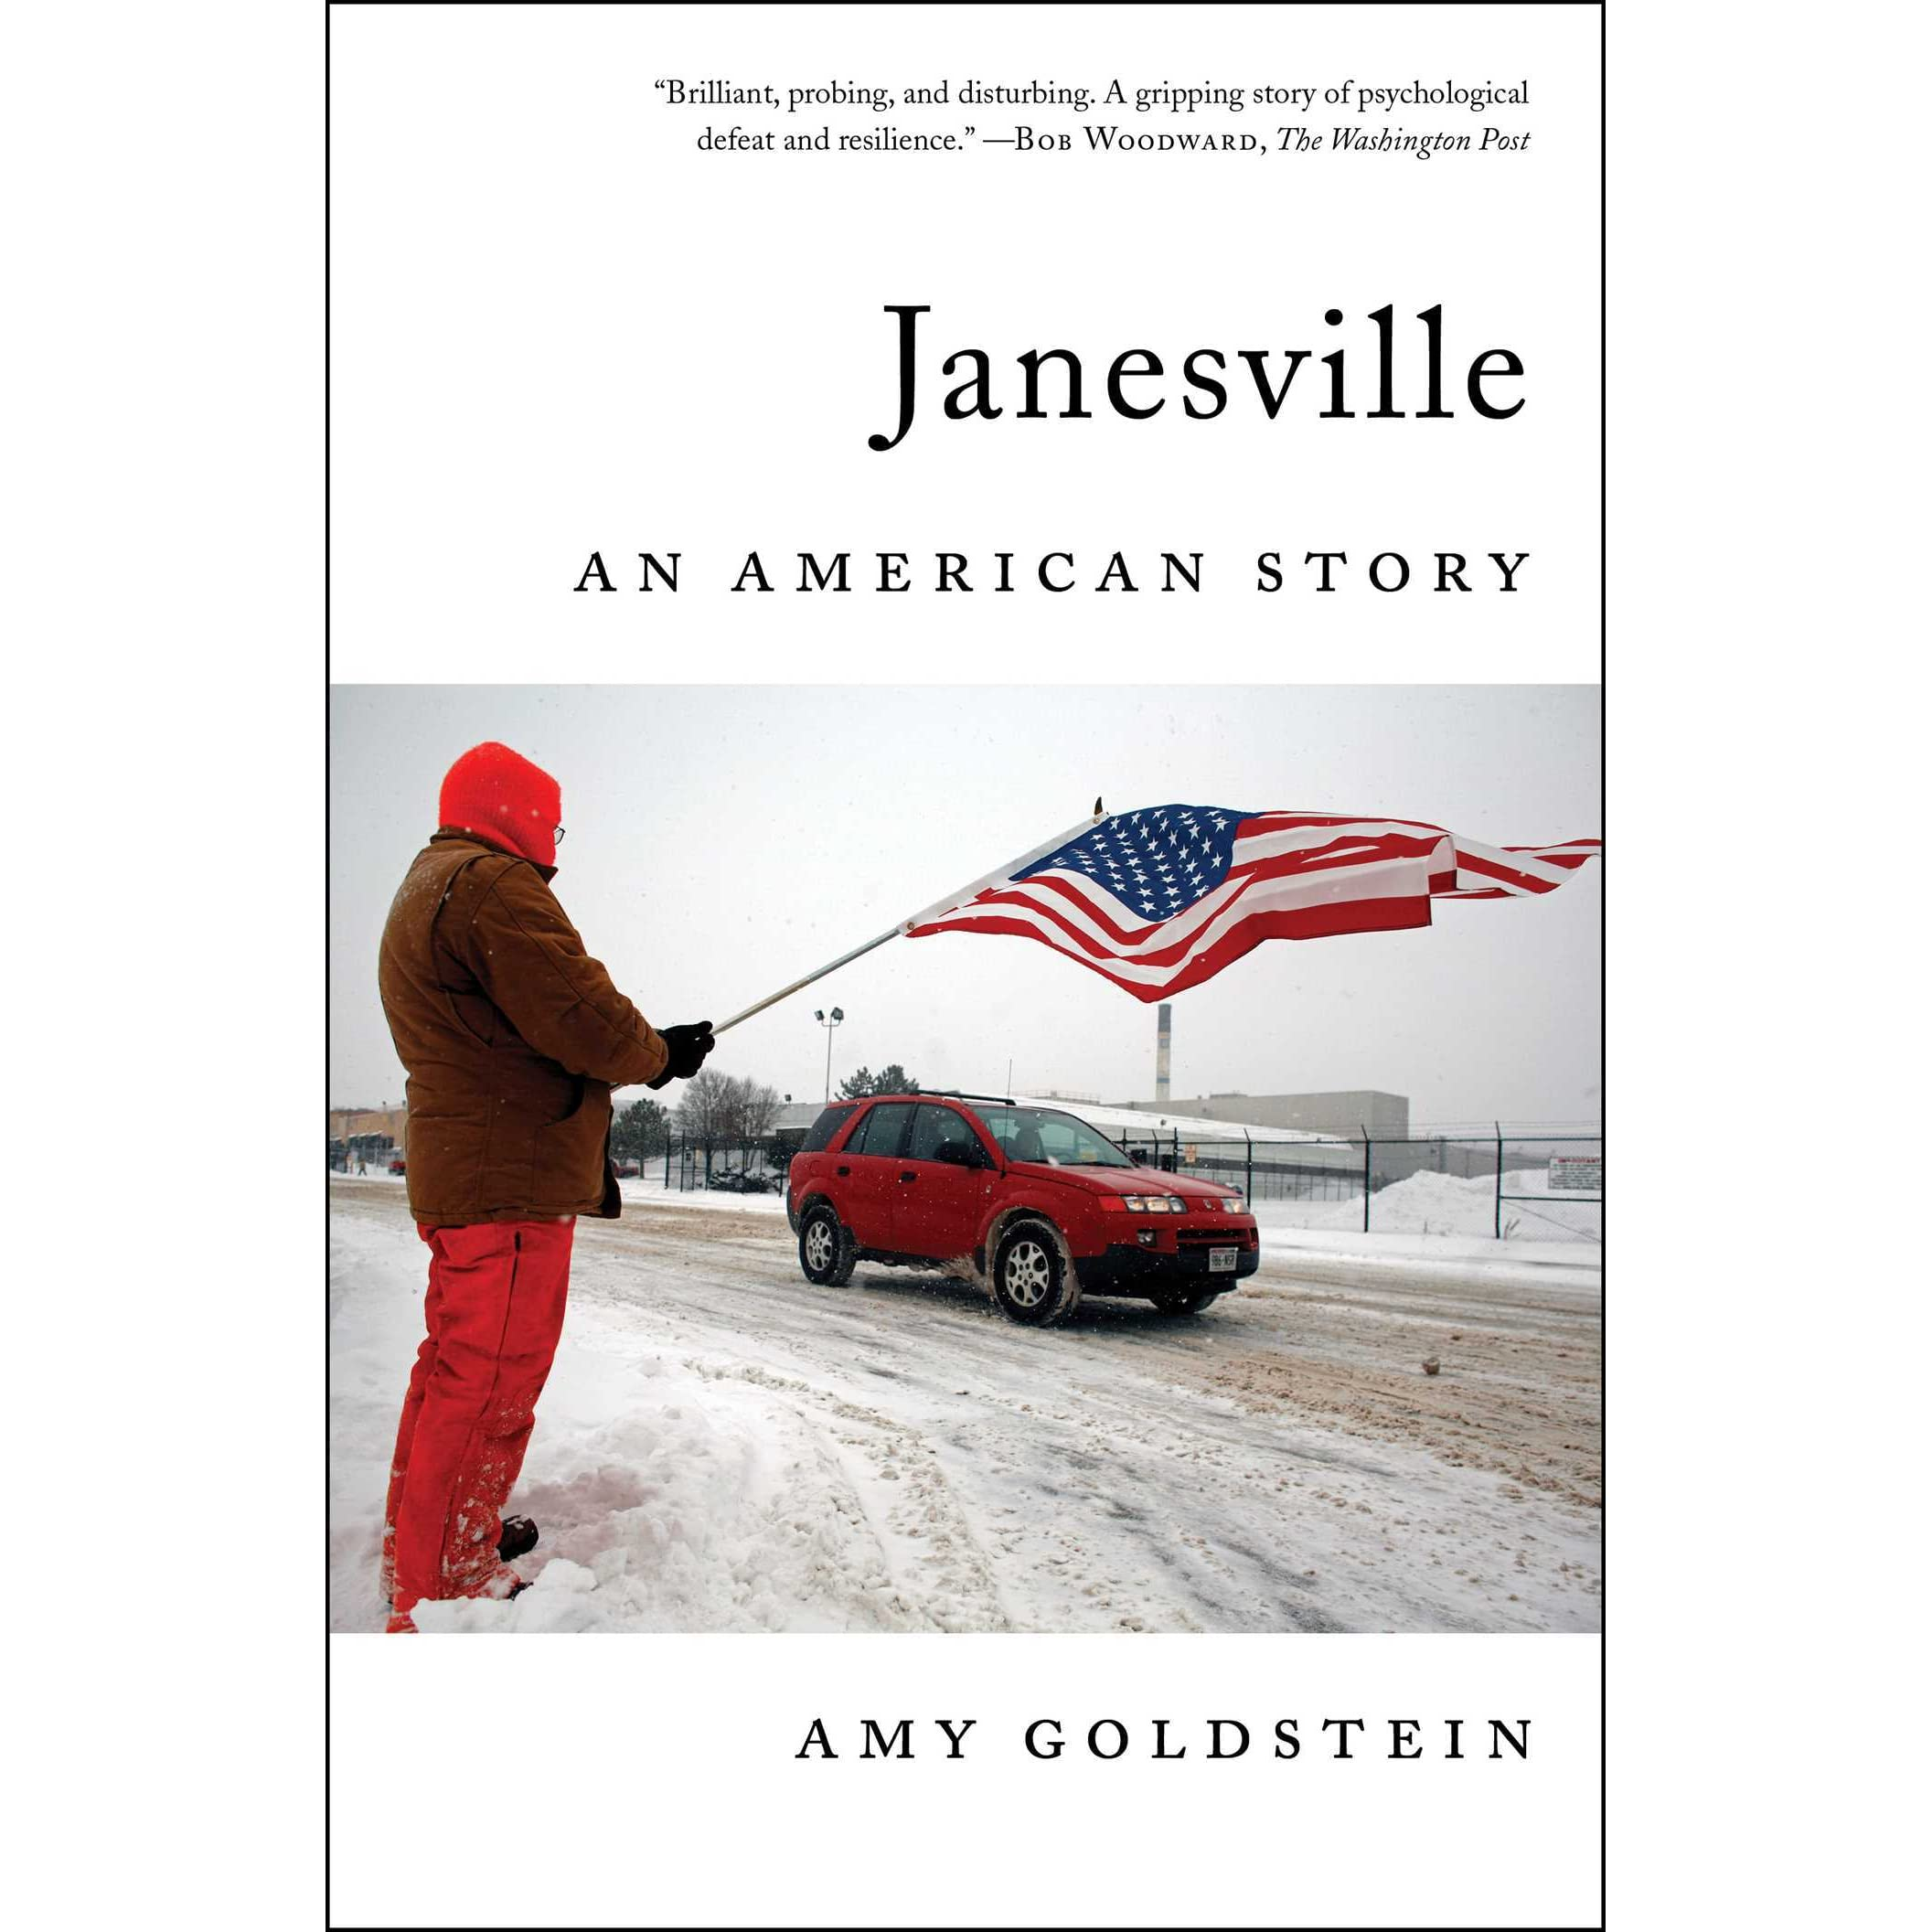 Janesville: An American Story by Amy Goldstein